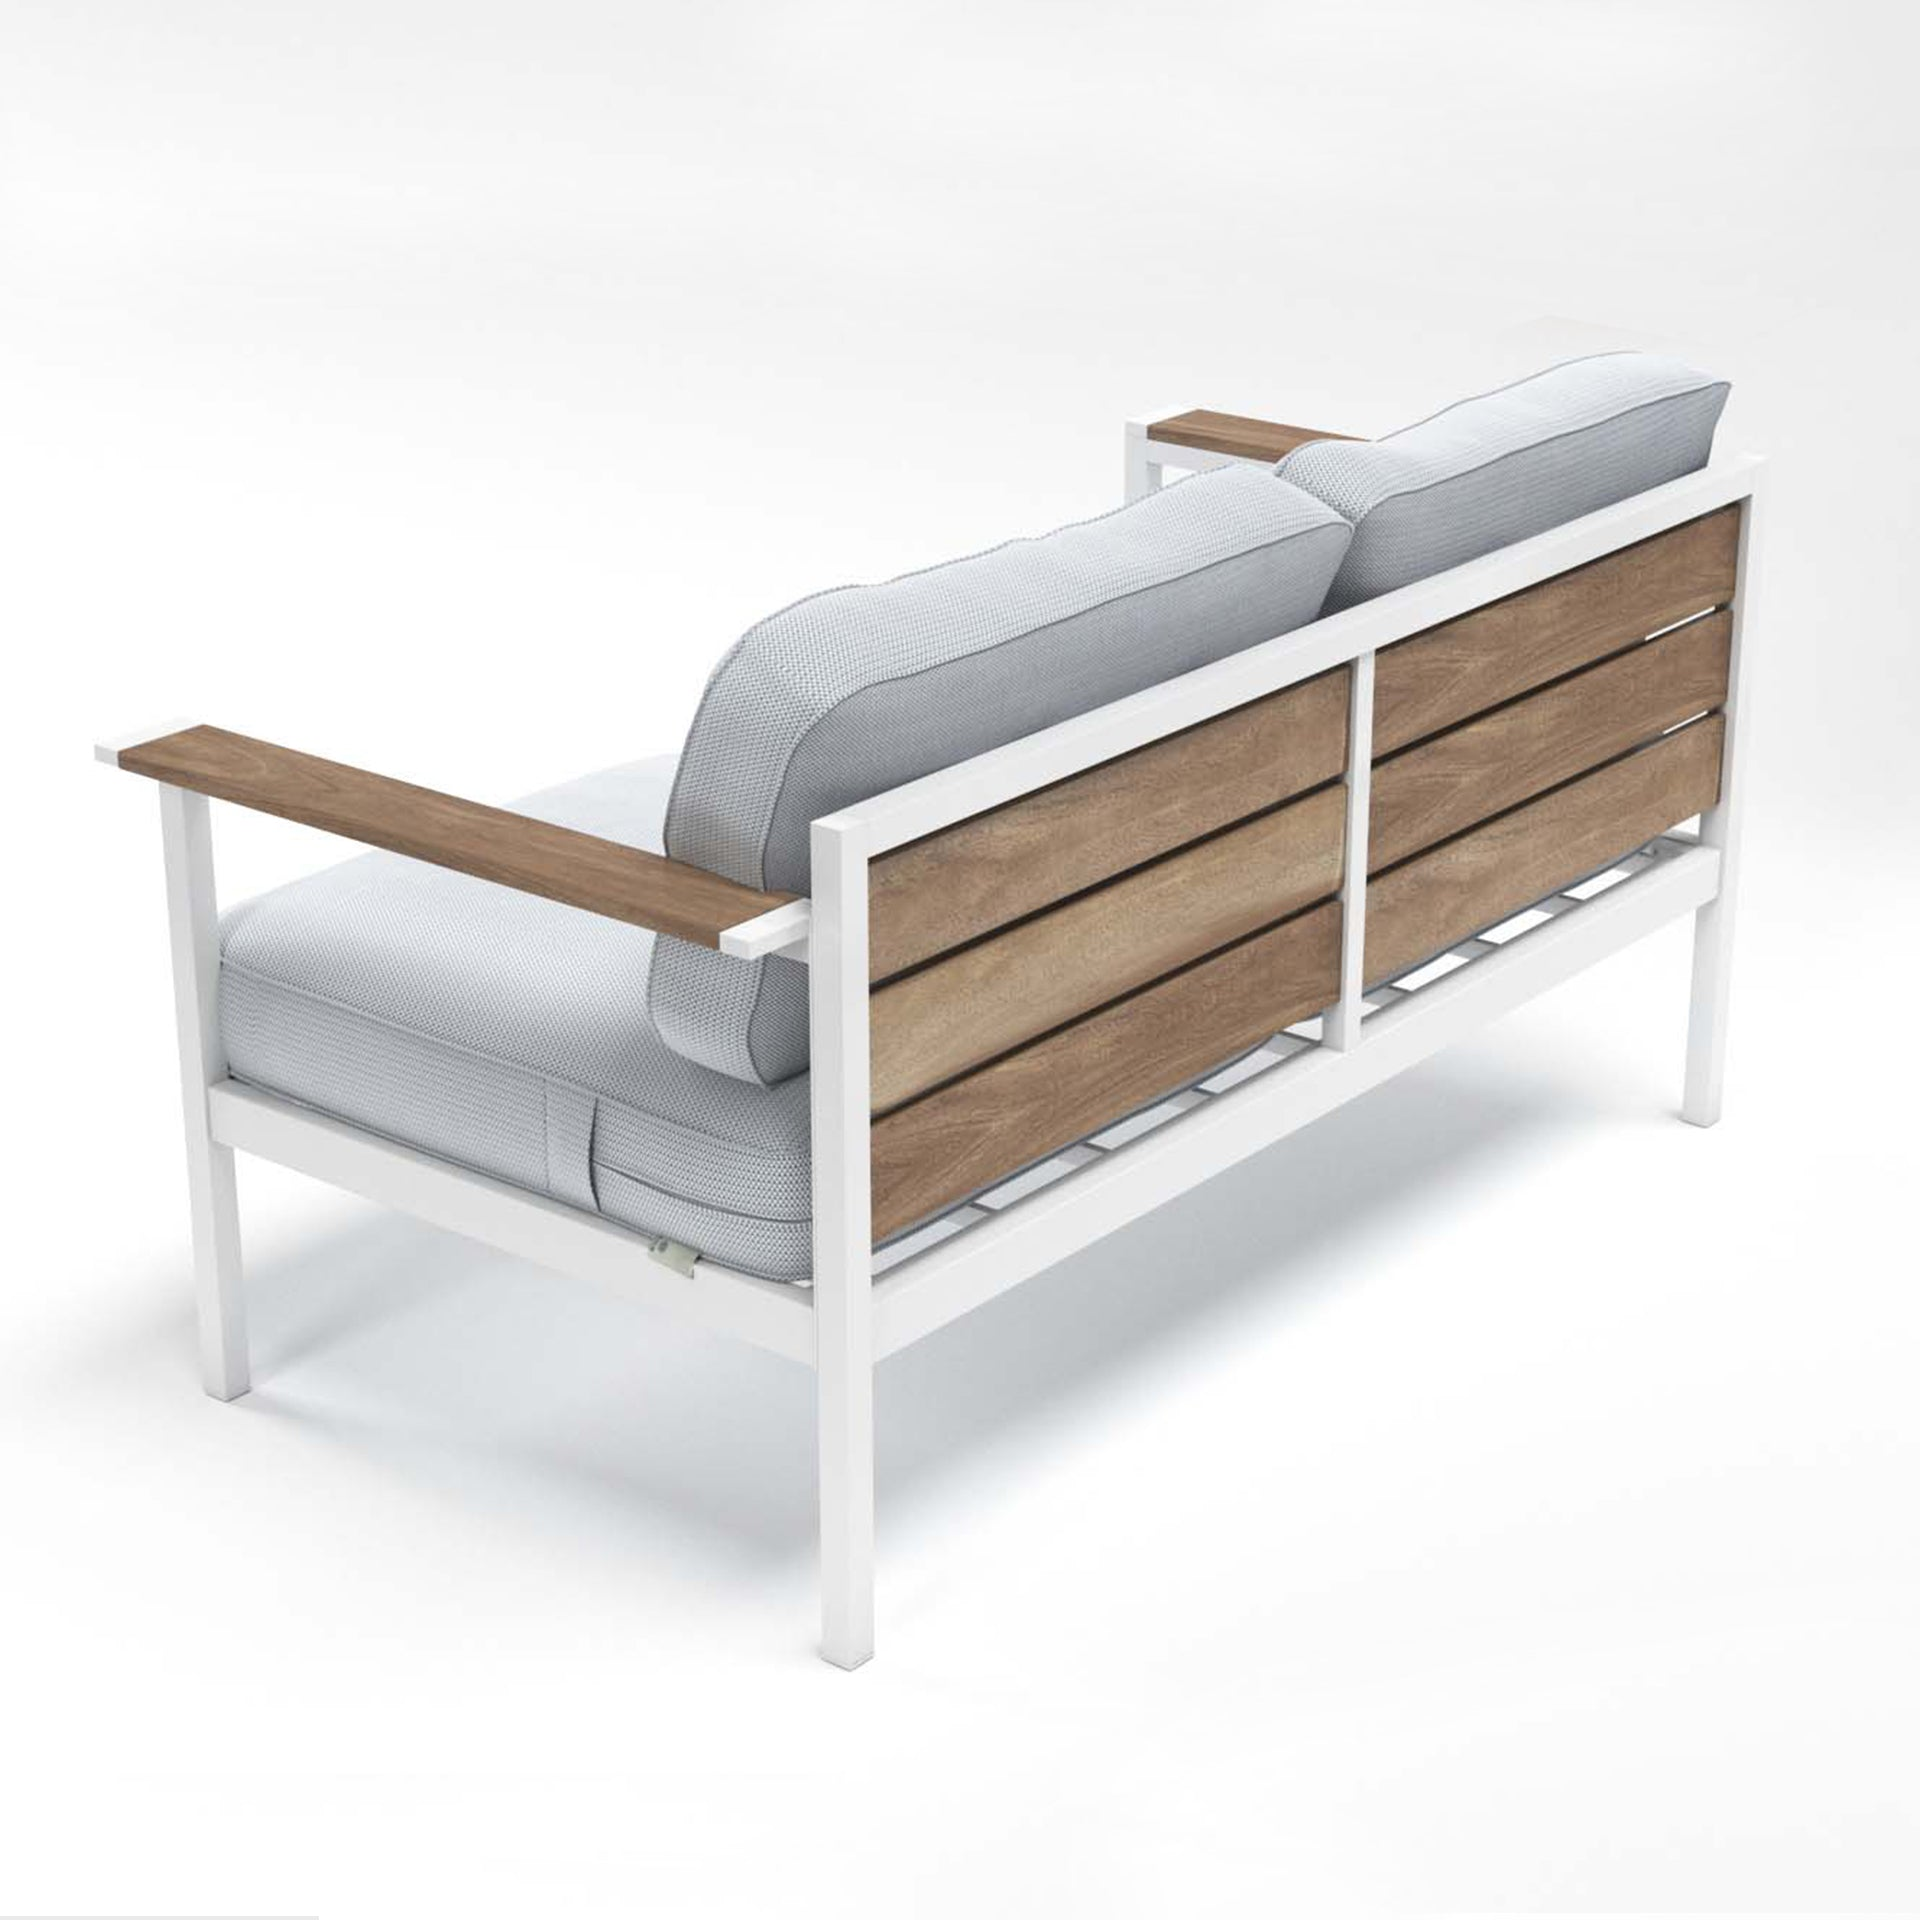 Steel and Wood Framed Outdoor Furniture